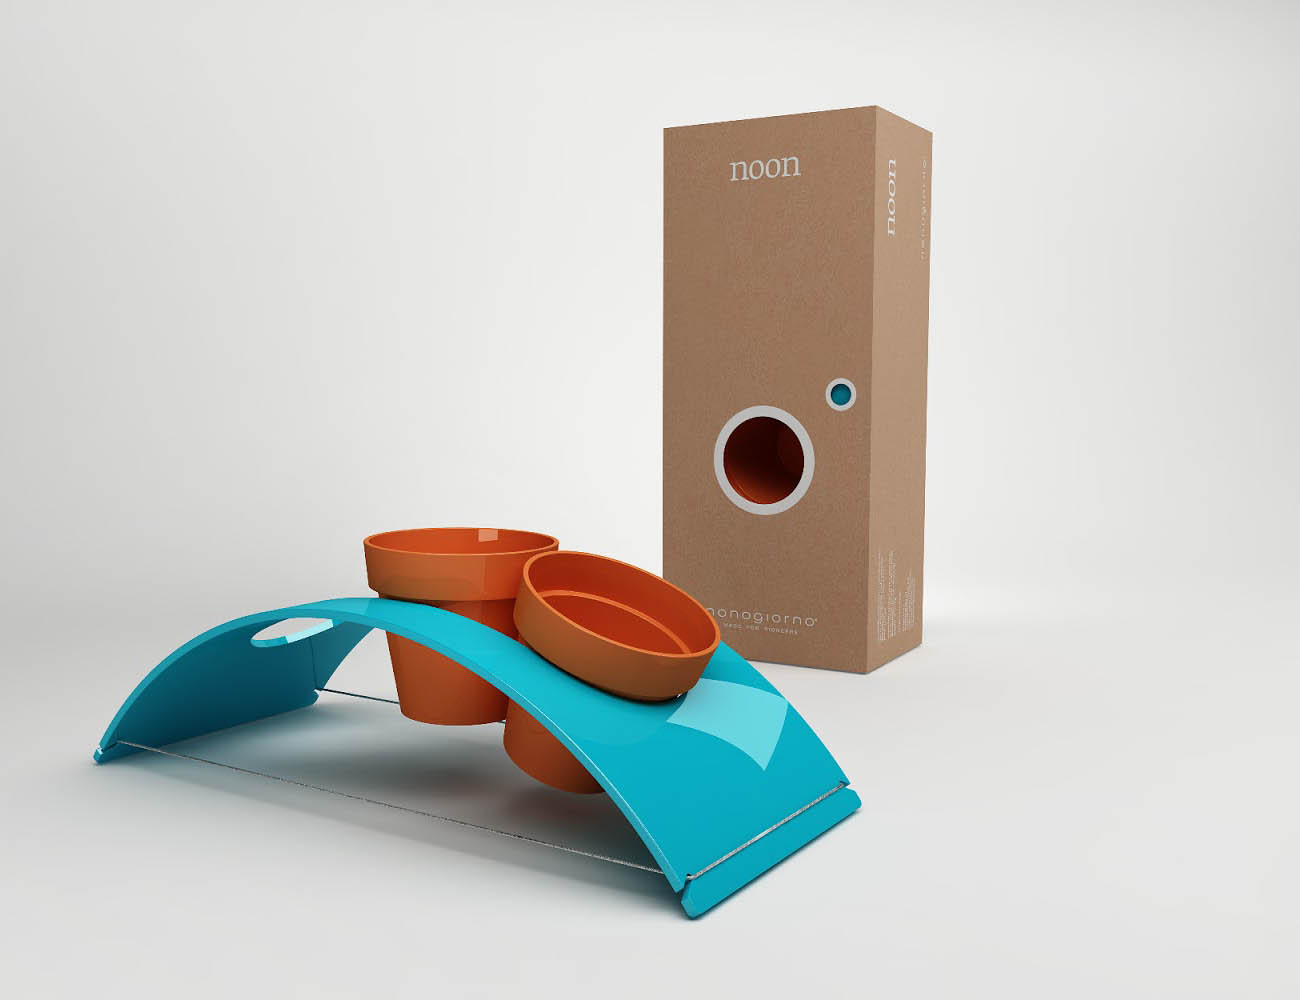 Noon Planter by Nonogiorno – Inspired From the Sundial